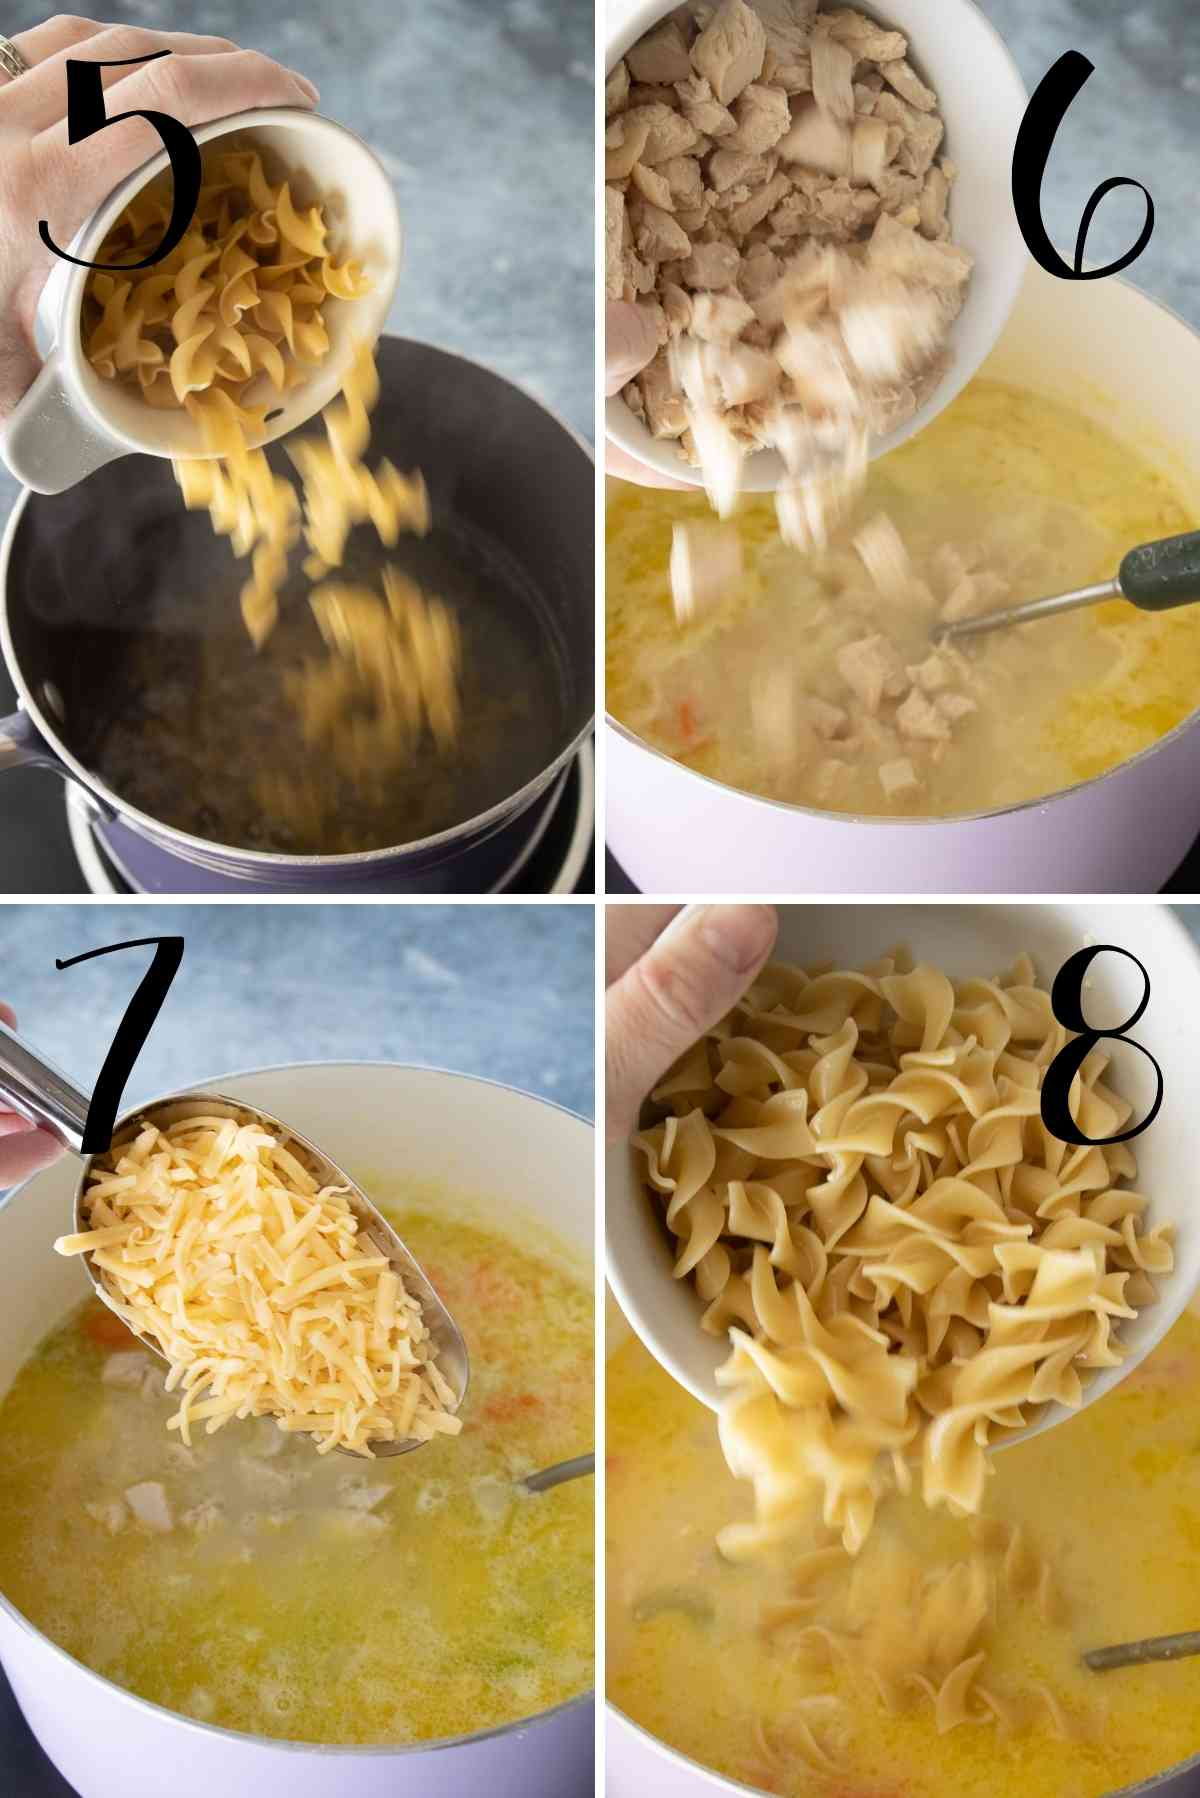 Noodle being cooked in a separate pot then added to the soup with chicken and cheese.